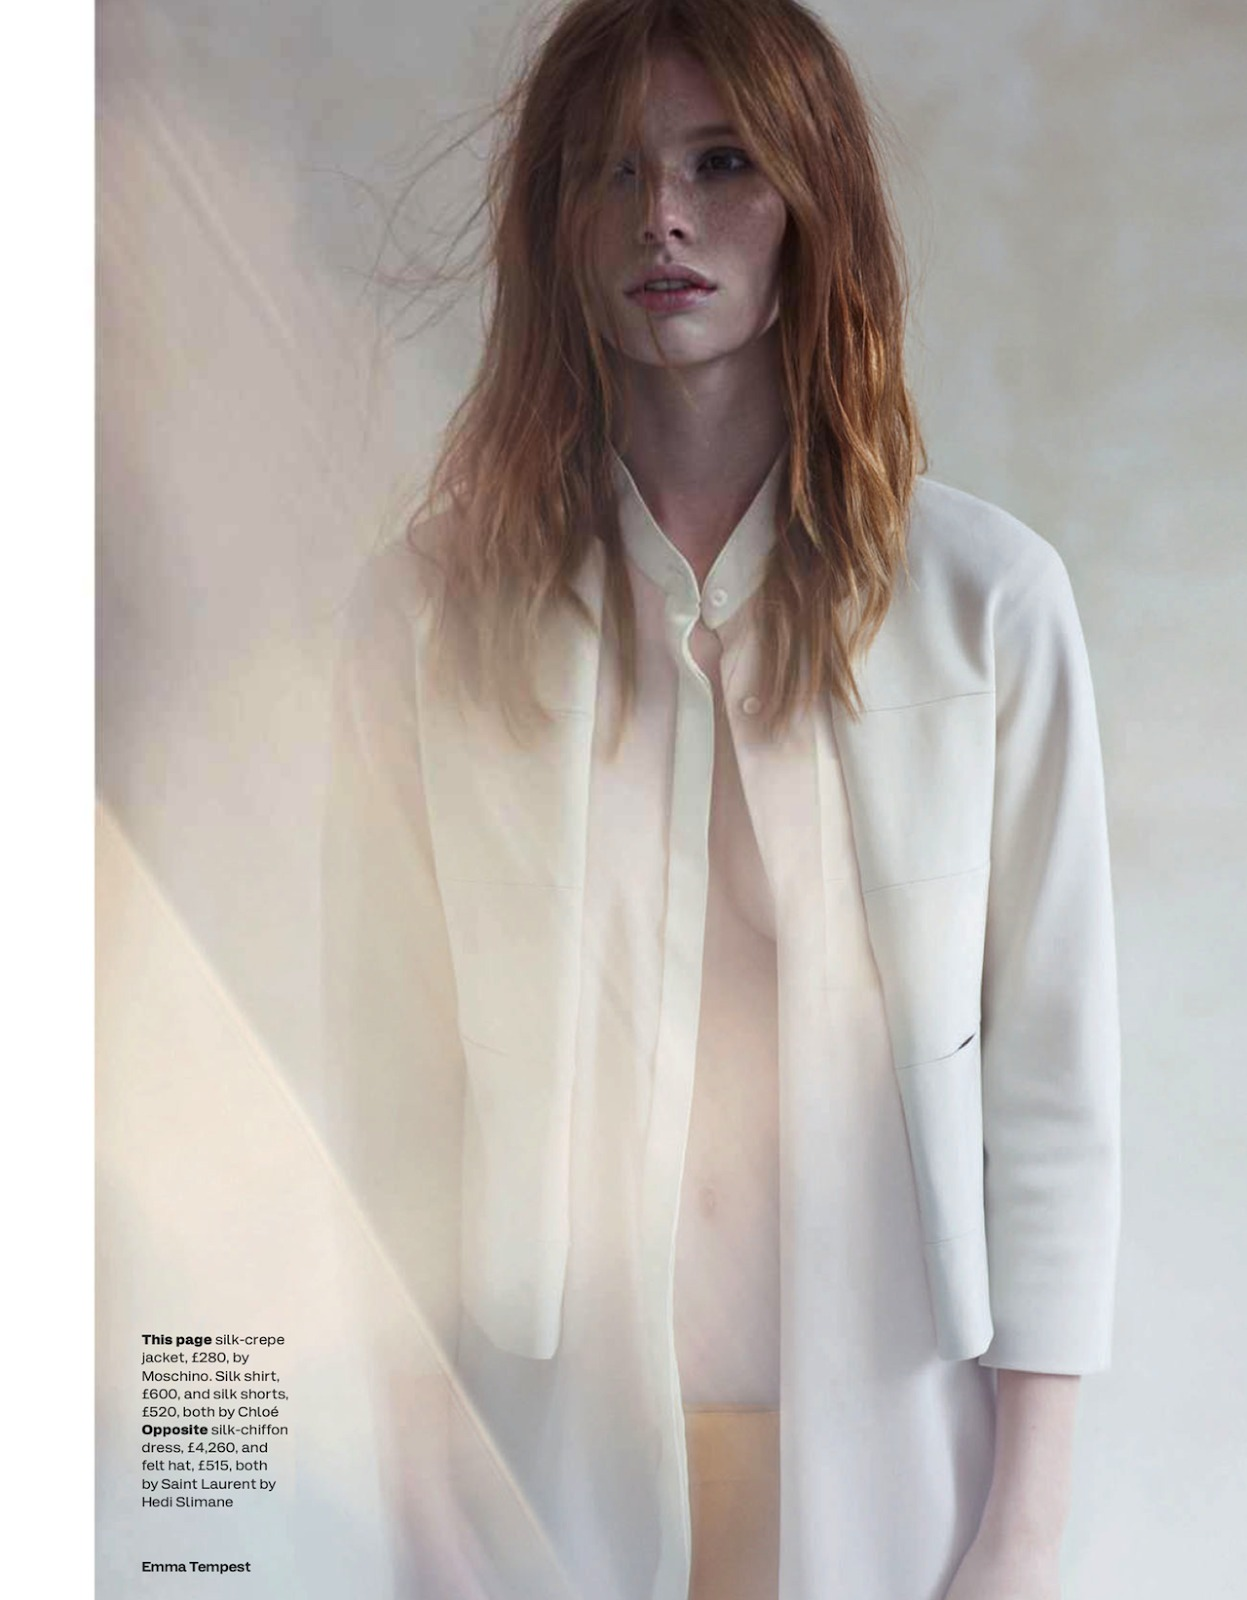 julia hafstrom by emma tempest for elle uk may 2013 the